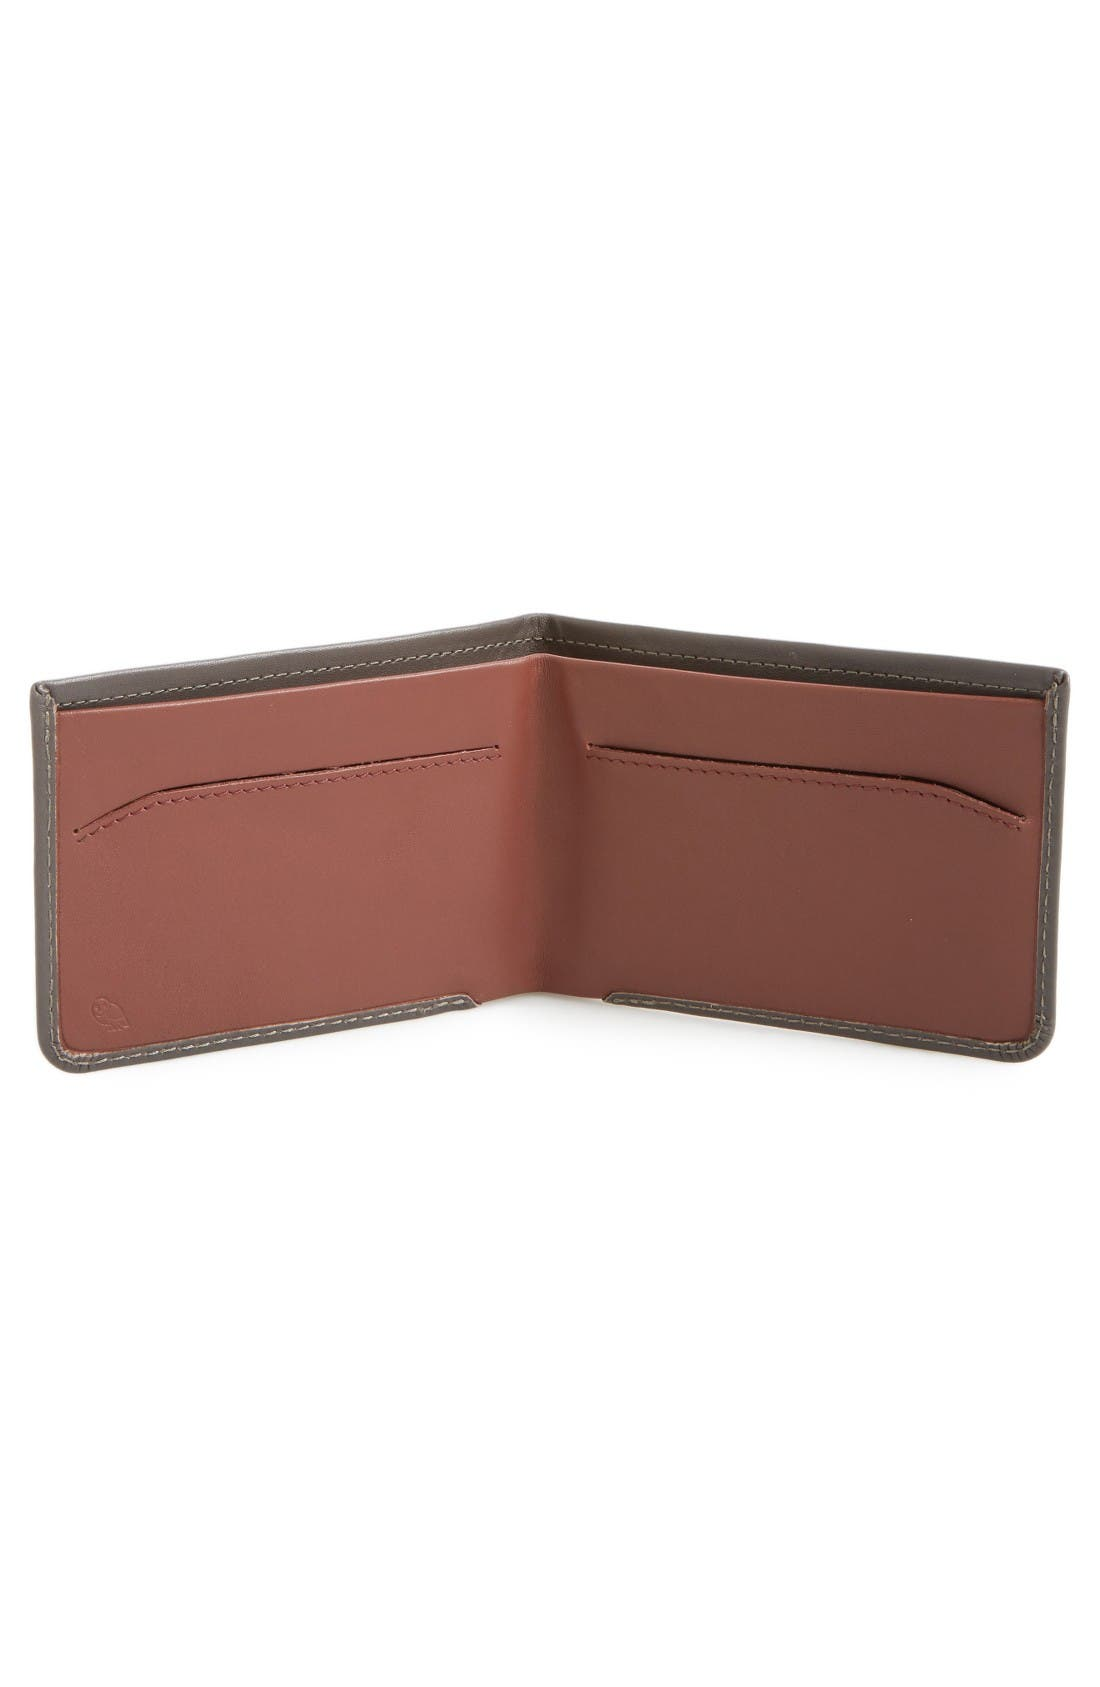 Low Down Leather Wallet,                             Alternate thumbnail 2, color,                             Charcoal